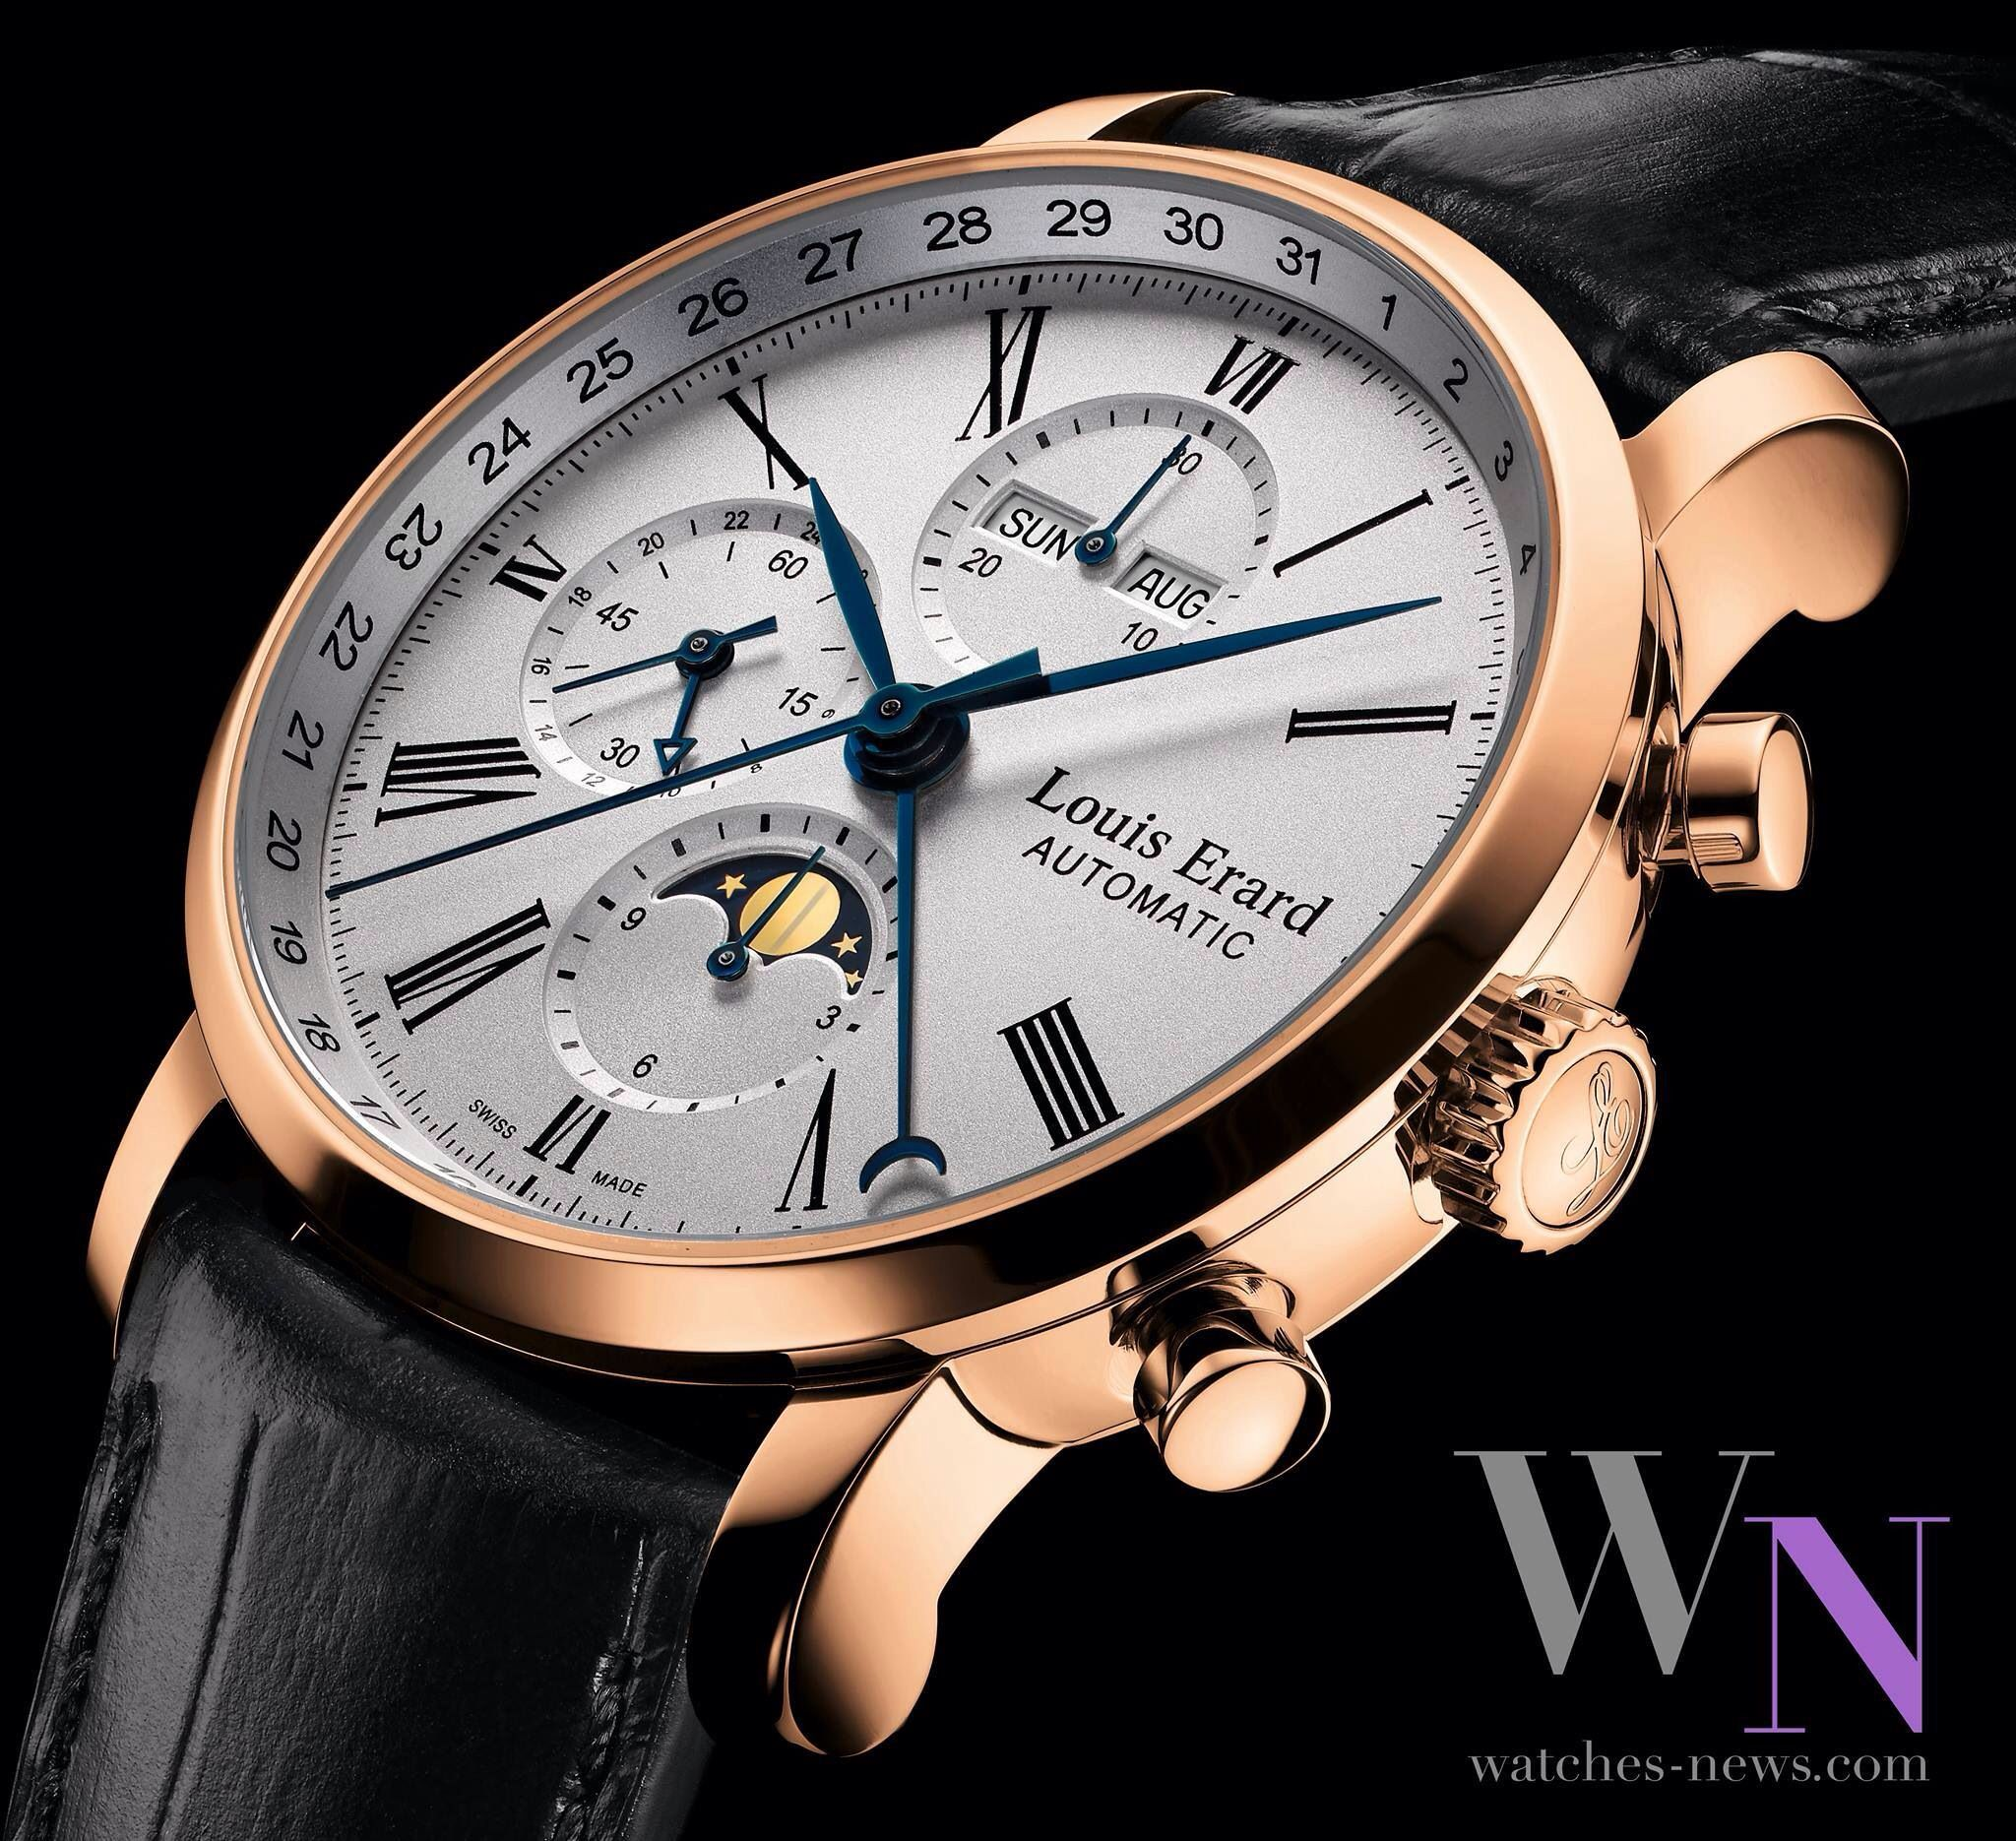 Louis Erard ルイエラール  - Excellence Moonphase 24hr Chronograph  #Watch